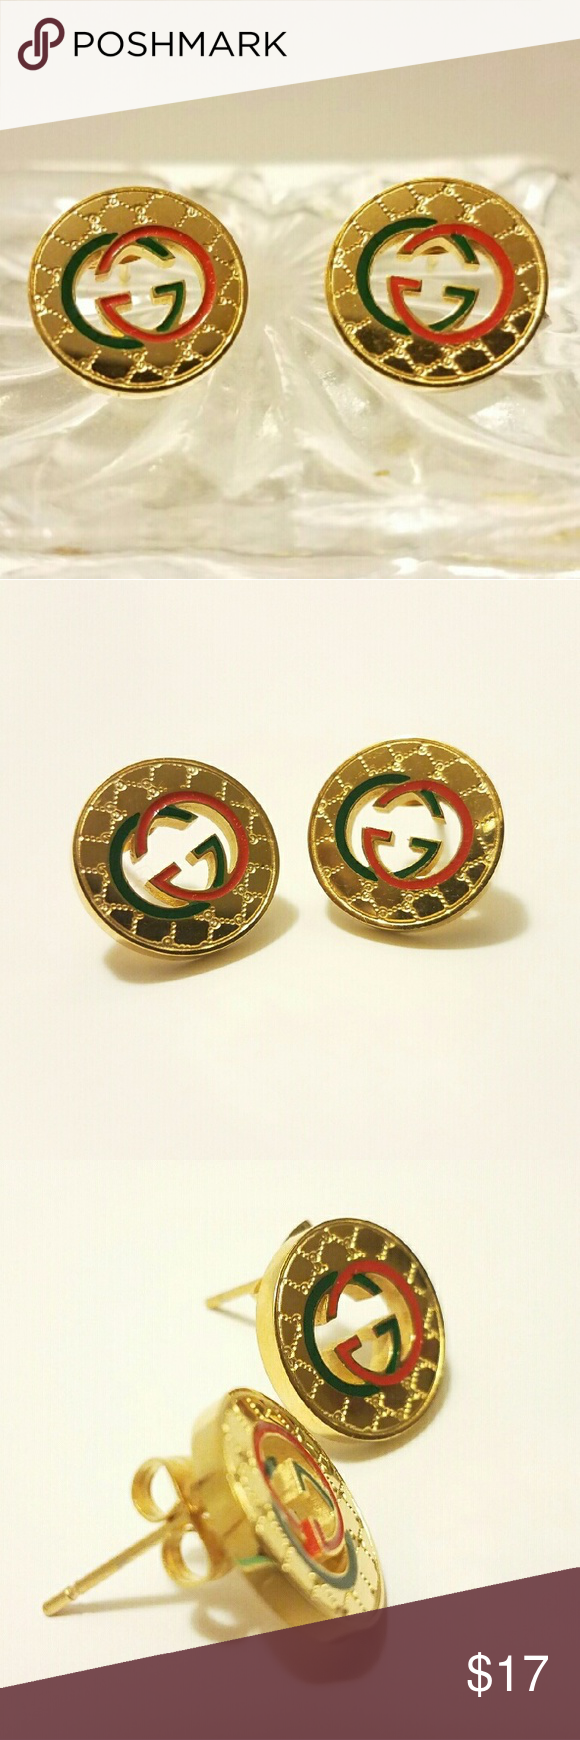 0455da773 Orginal Gucci Earrings Vintage Gold Gucci Inspired Earrings Excellent  Quality Stainless steel will not fade, (NO LOW BALL OFFERS PLEASE) Make me  an offer NO ...